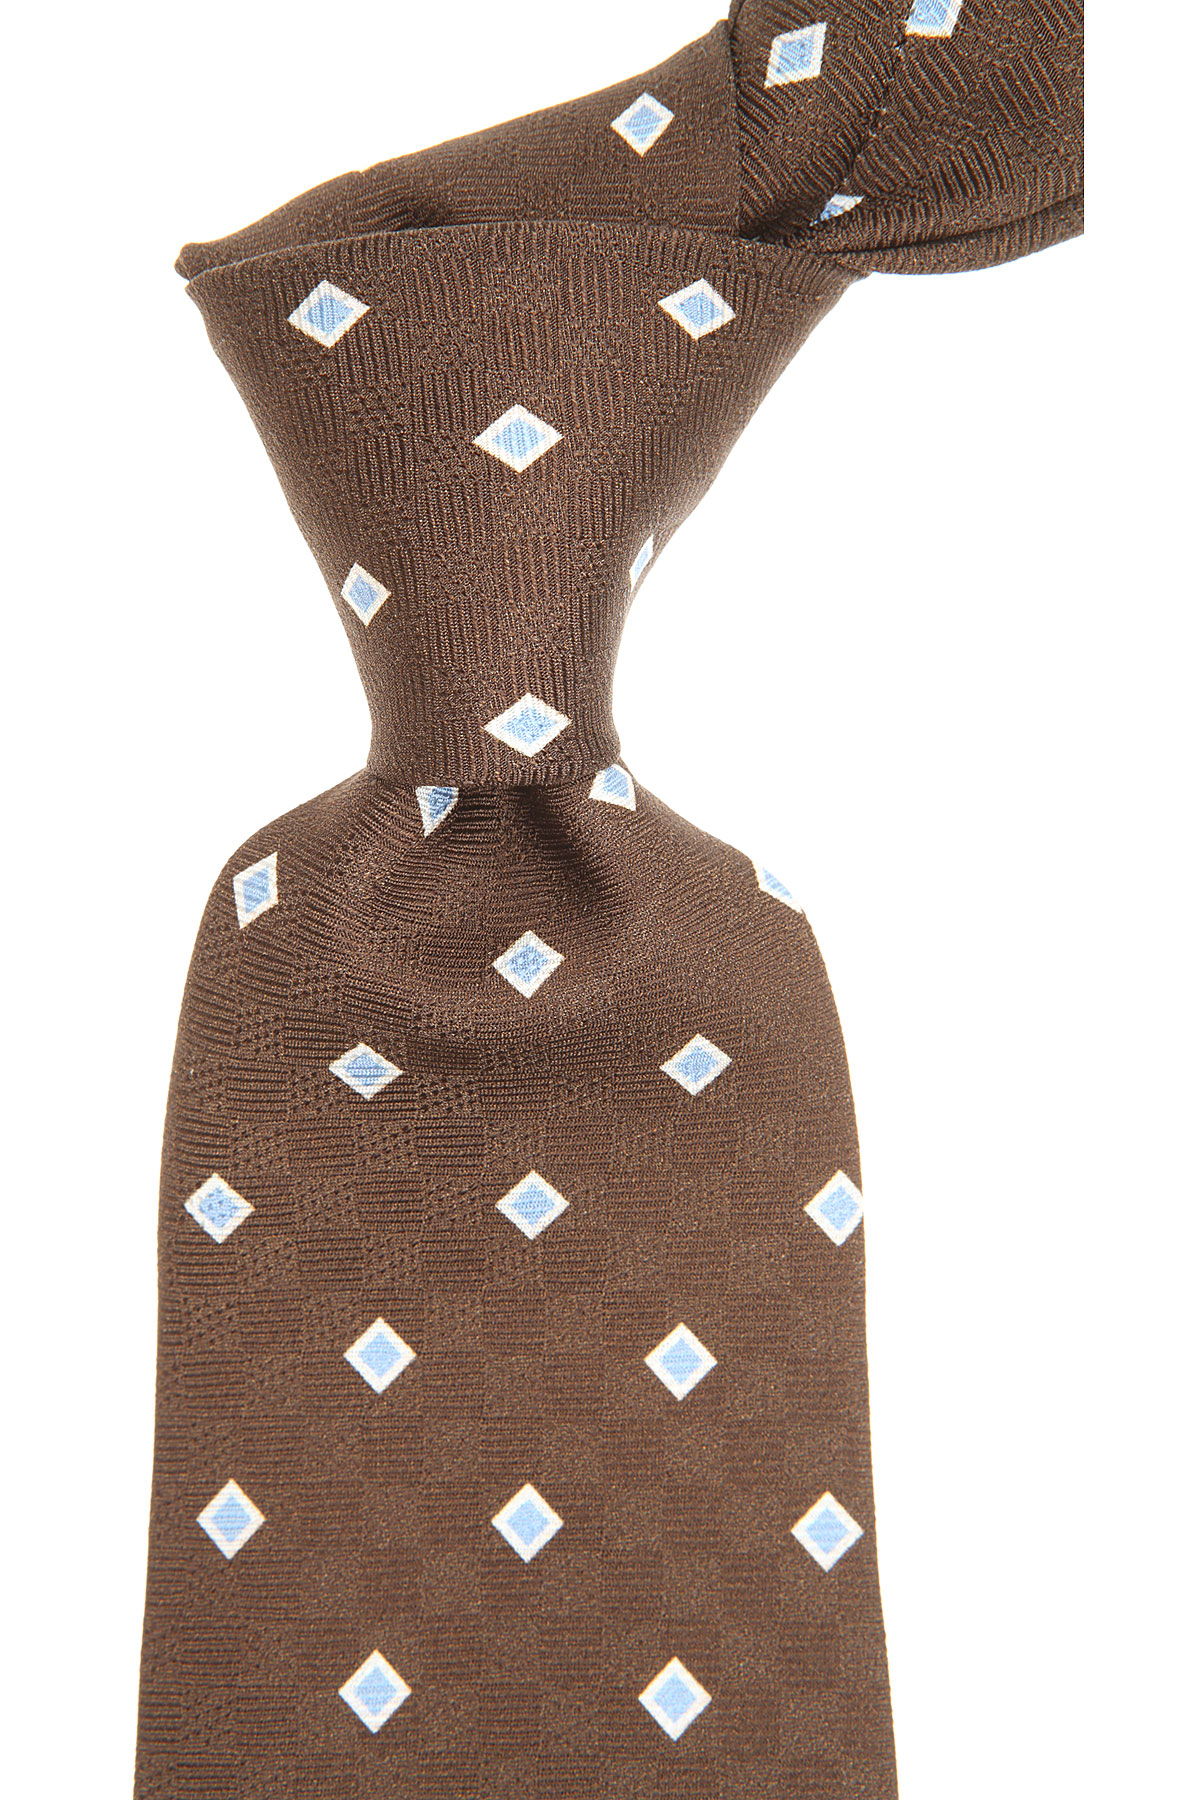 S.T. Dupont Ties On Sale, Chocolate Brown, Silk, 2019